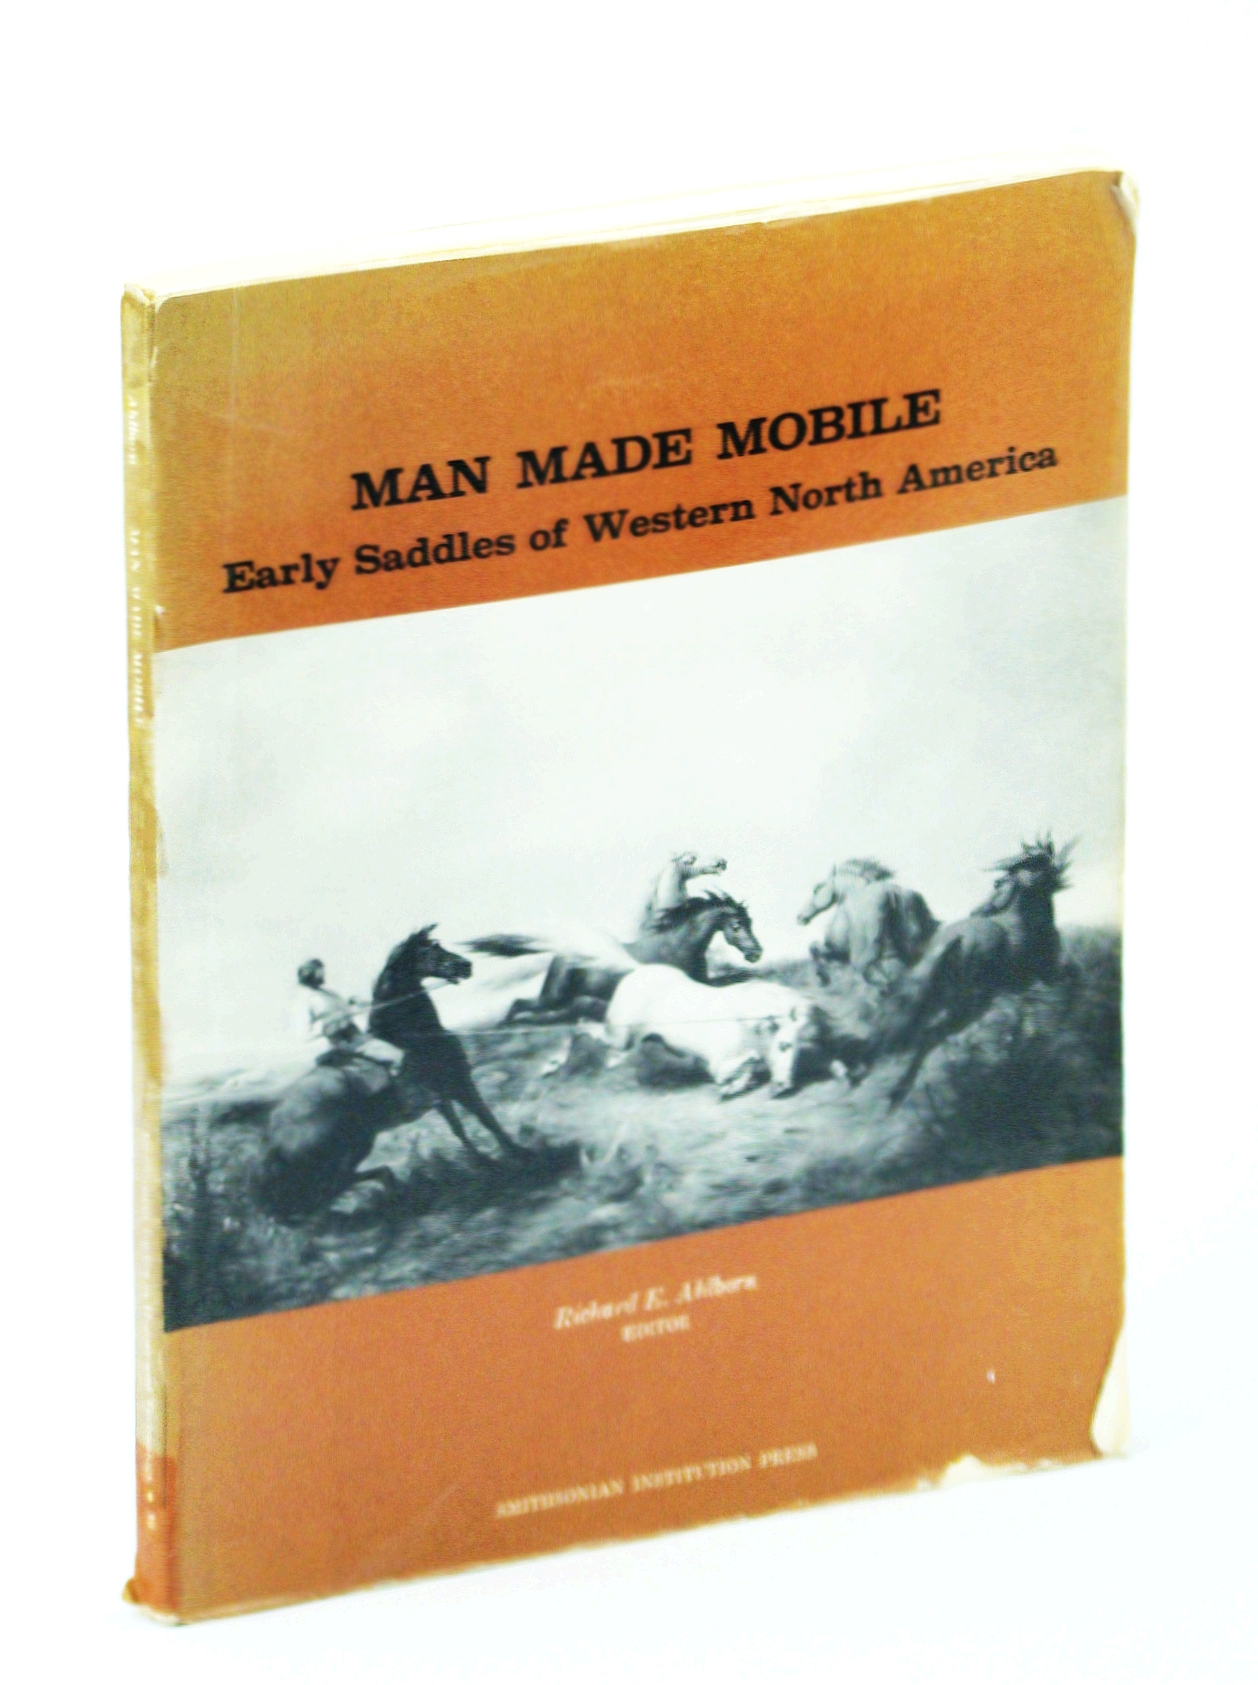 Image for man made mobile early saddles of western north america